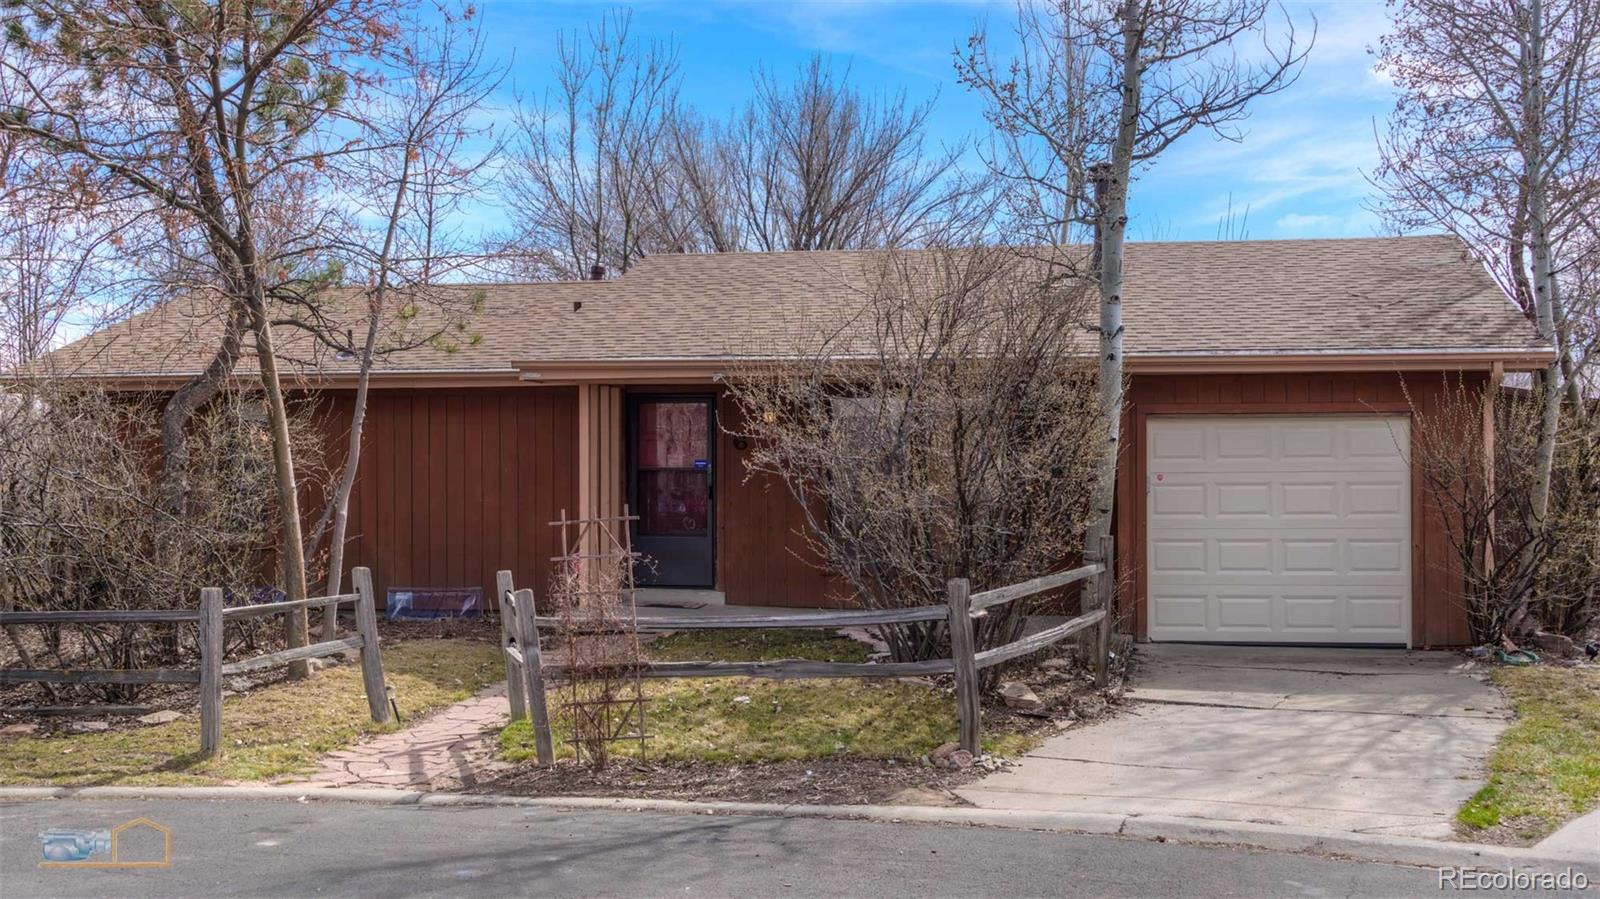 MLS# 4728758 - 1 - 6 Pinon Place, Broomfield, CO 80020